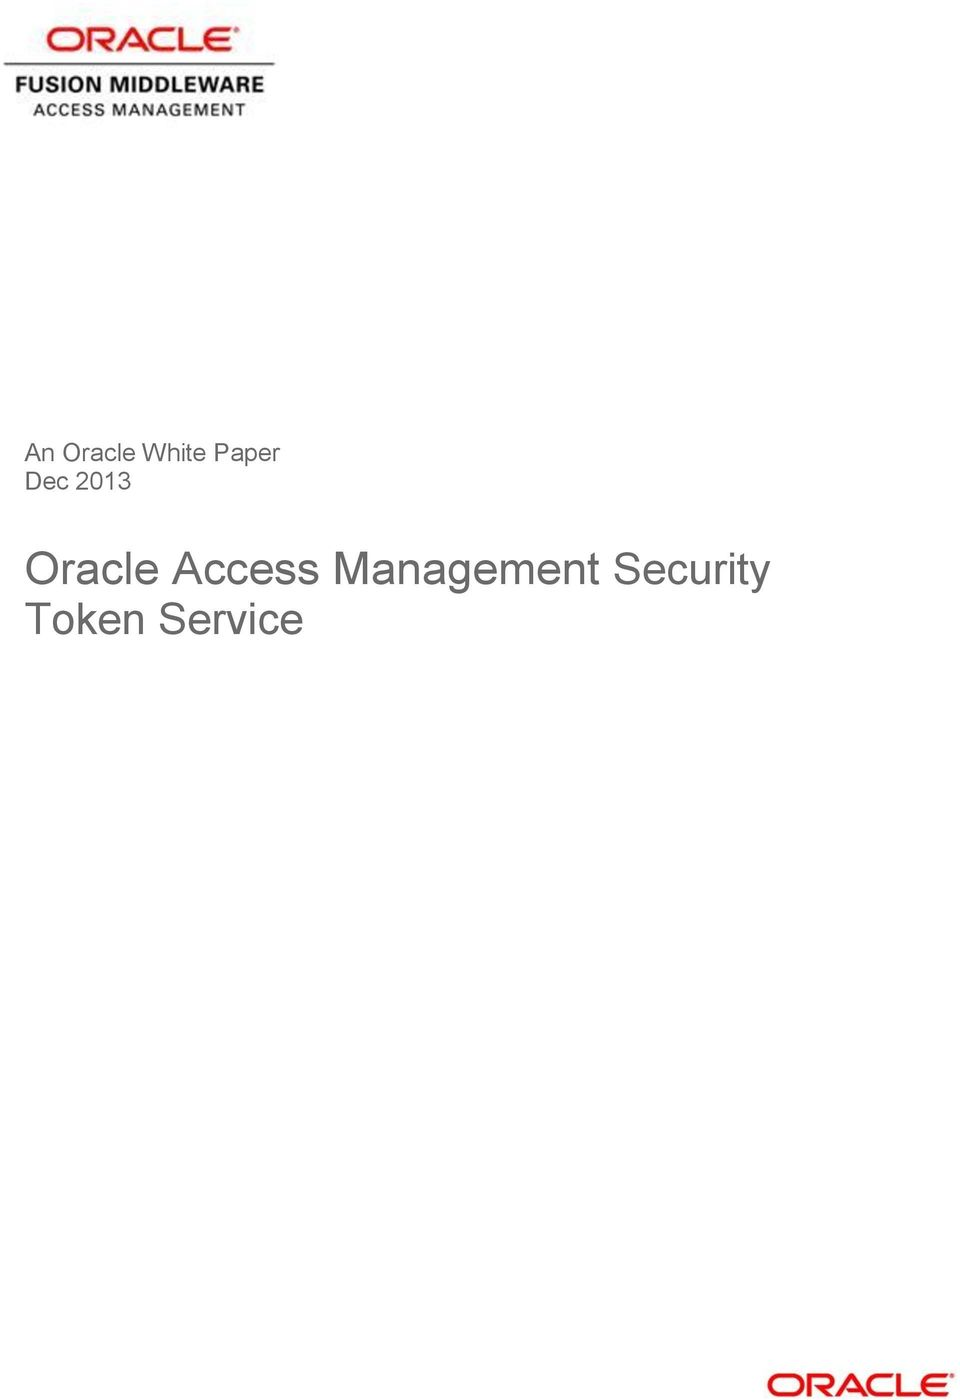 Oracle Access